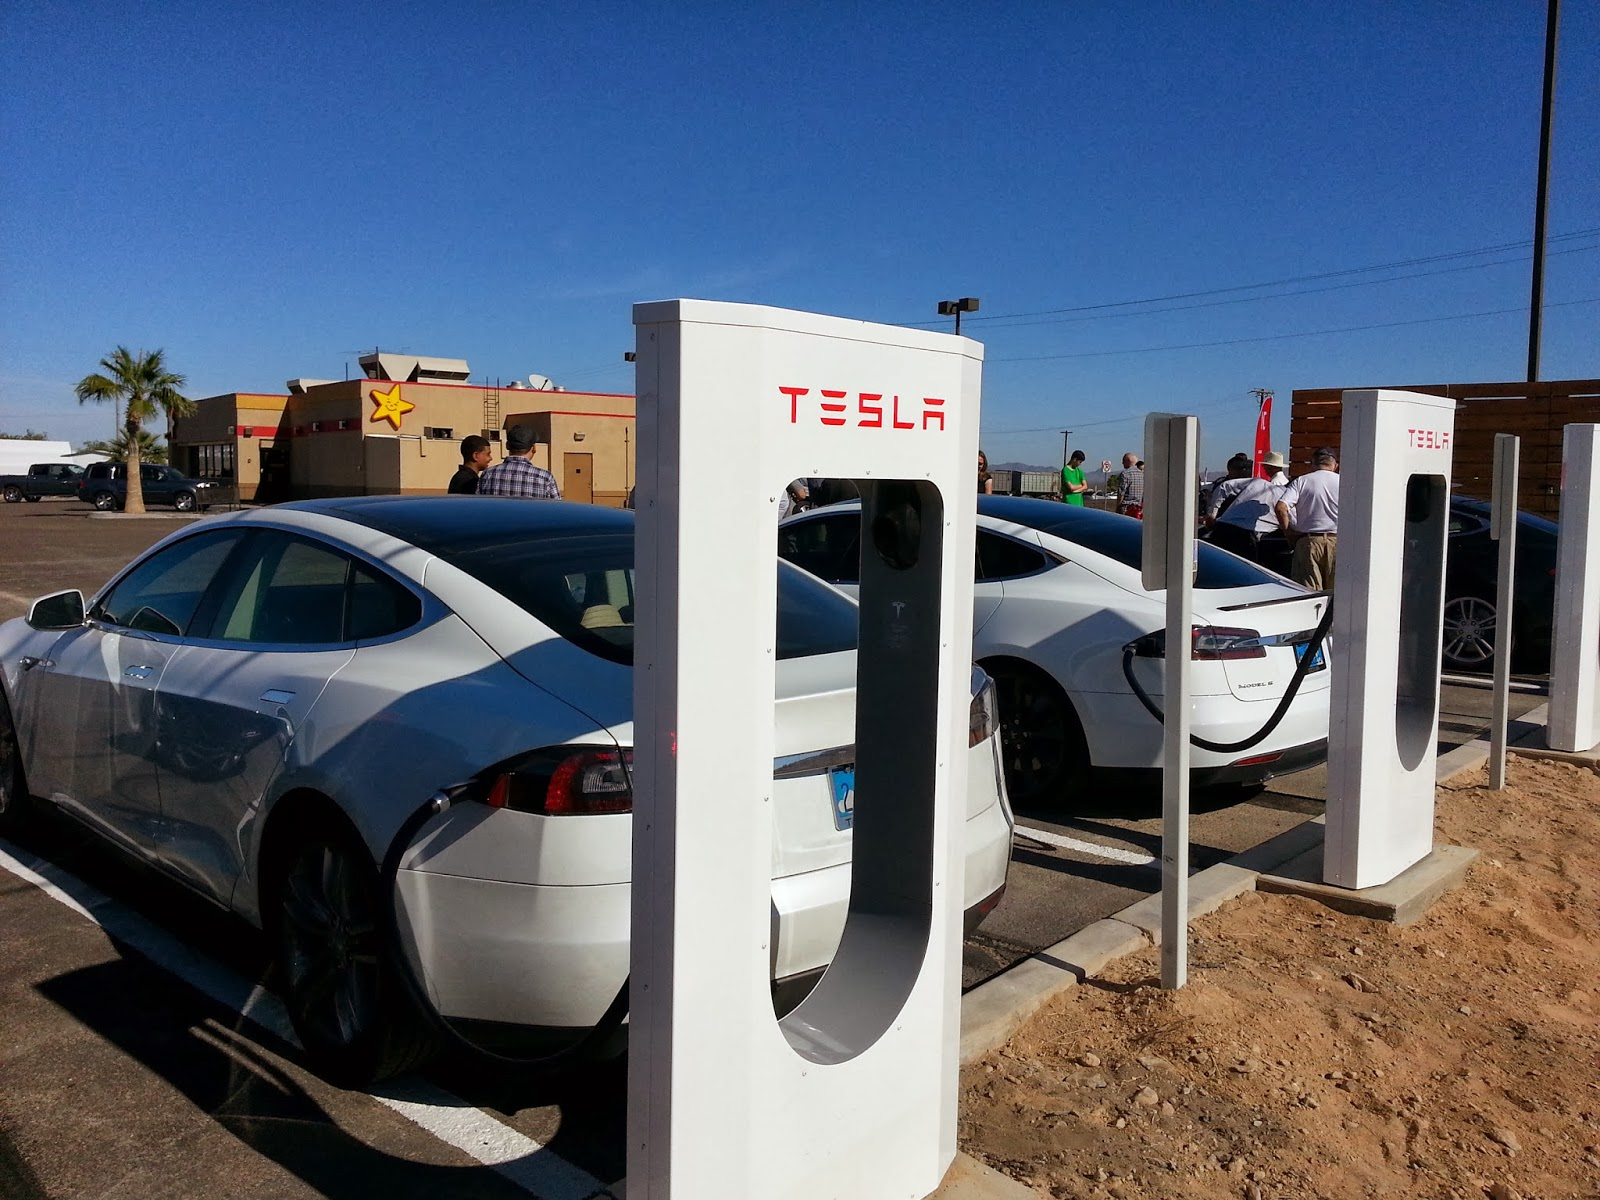 Superchargers Are Designed For City To Travel Allowing Tesla Model S Electric Vehicle Drivers About Three Hours Take A 20 30 Minute